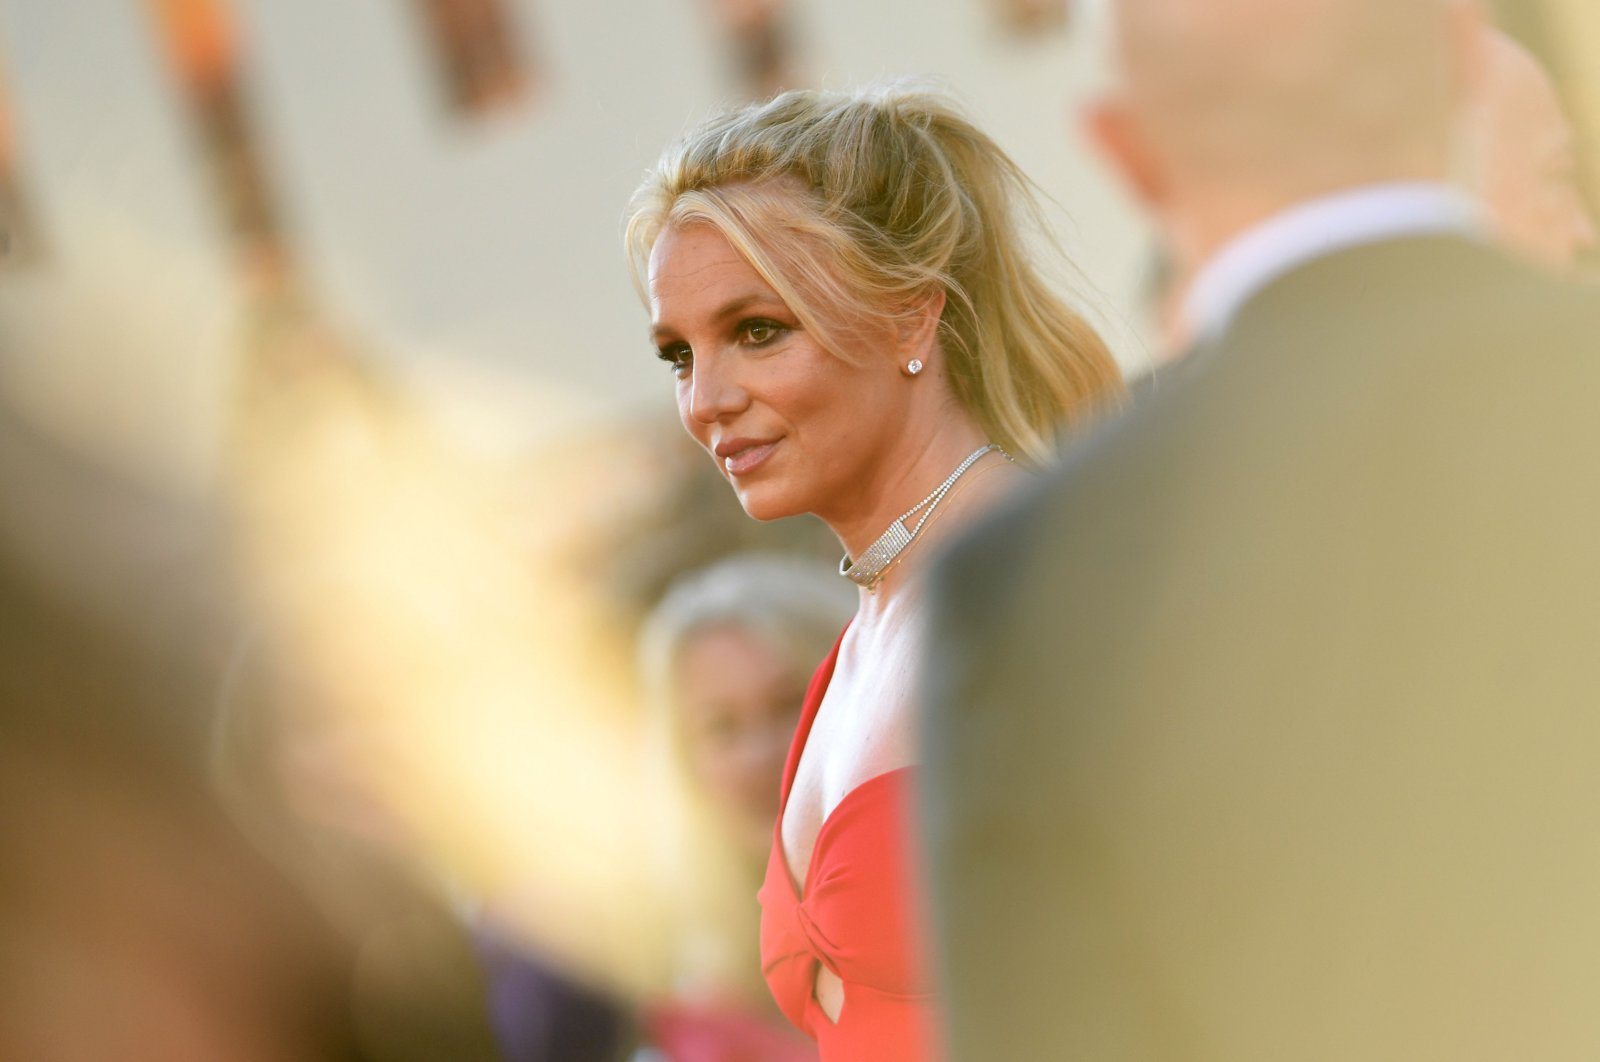 """Singer Britney Spears arrives for the premiere of Sony Pictures' """"Once Upon a Time... in Hollywood"""" at the TCL Chinese Theatre in Hollywood, California, U.S., July 22, 2019. (AFP Photo)"""